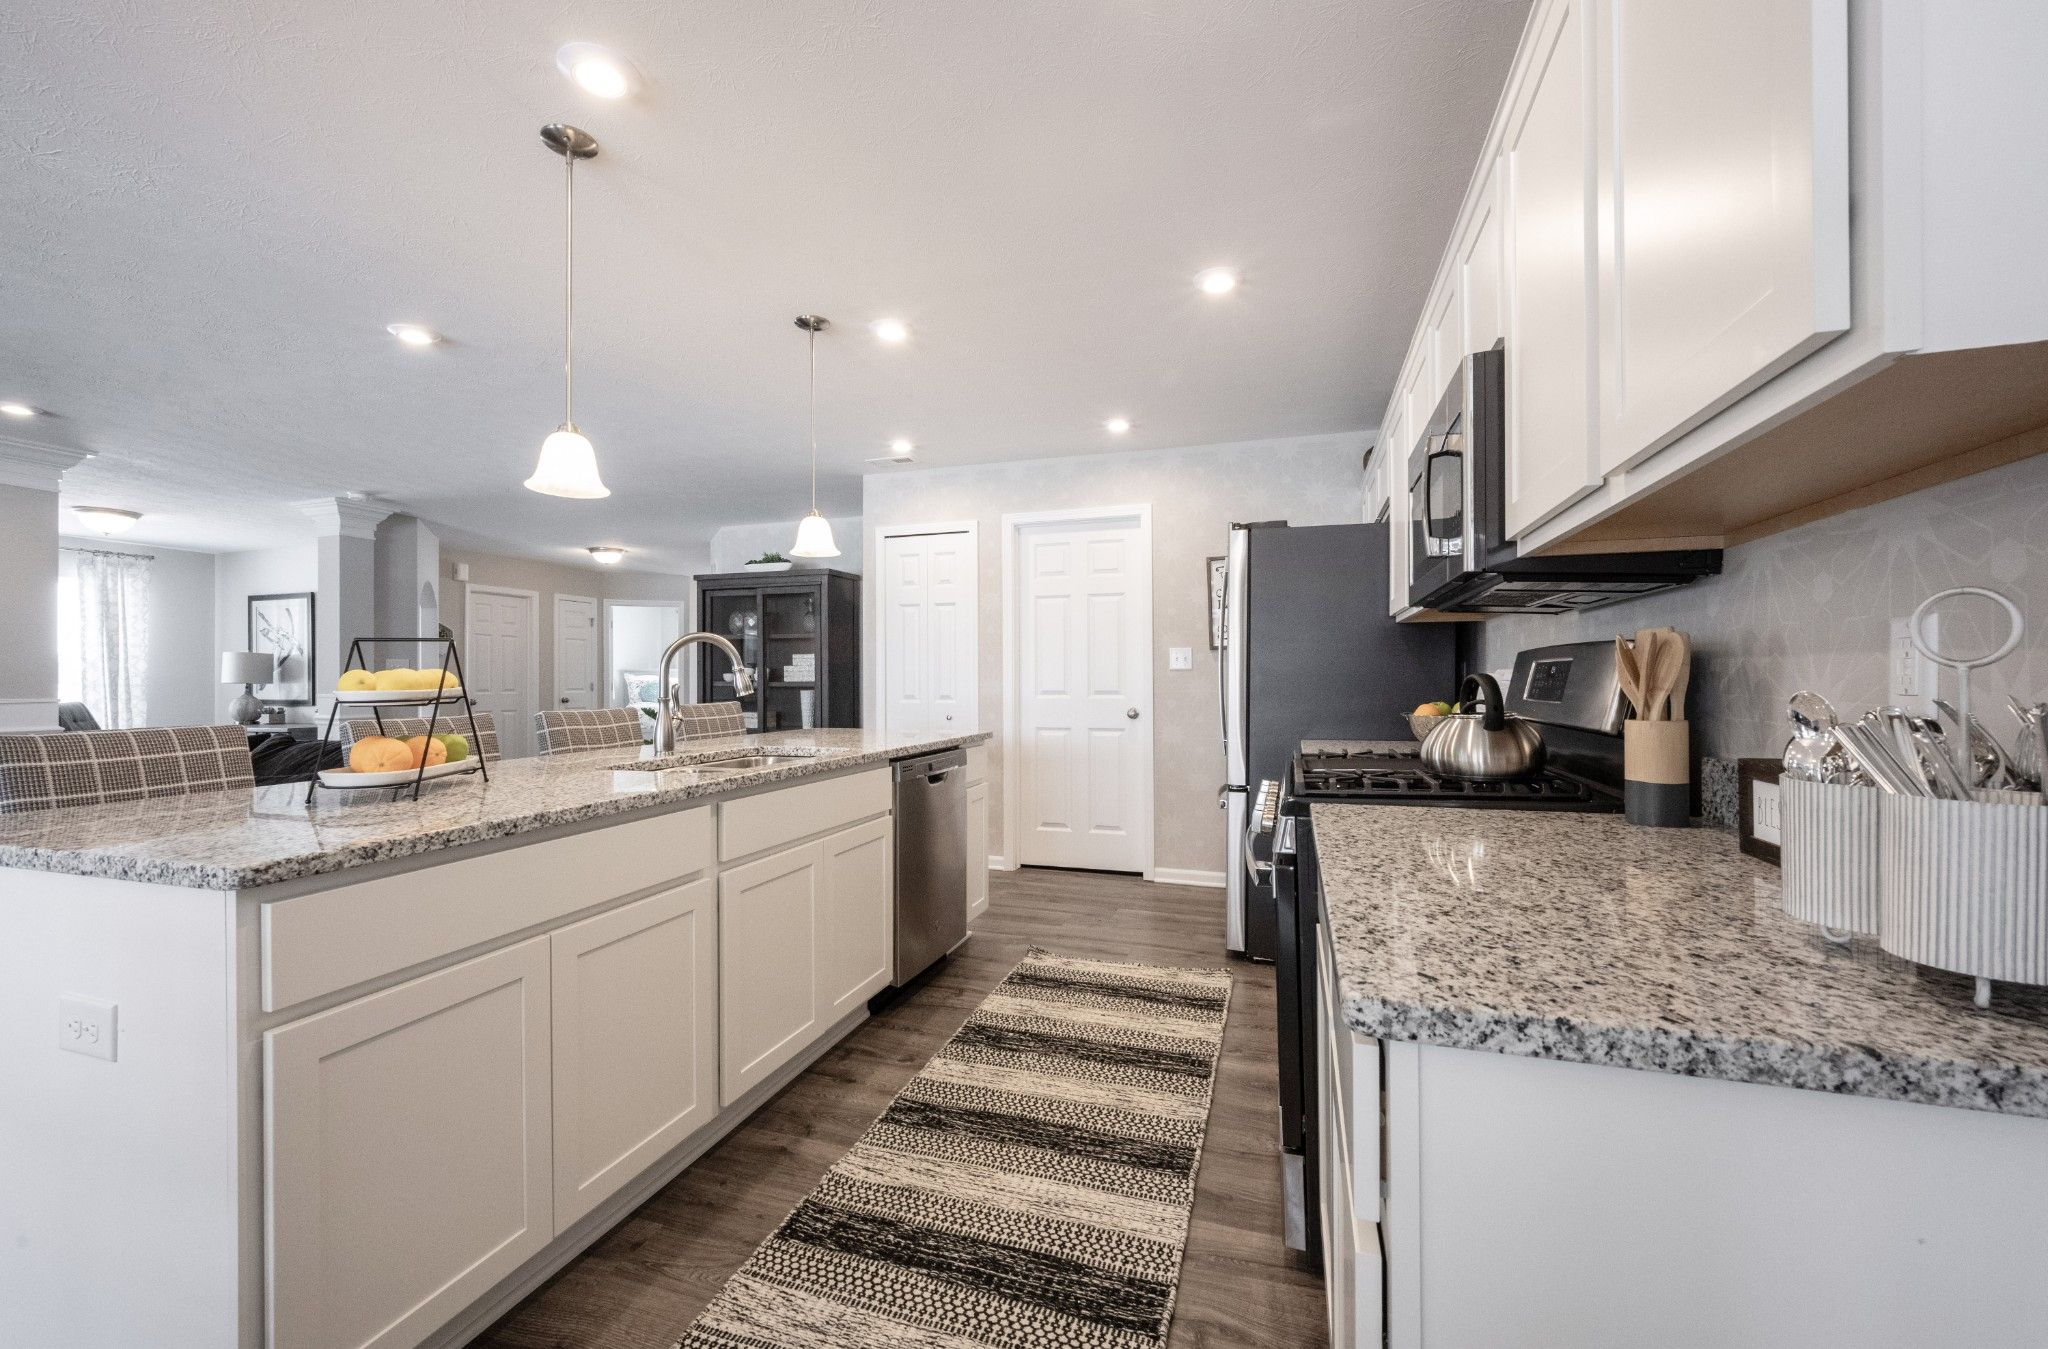 Kitchen featured in the Keaton By Olthof Homes in Indianapolis, IN